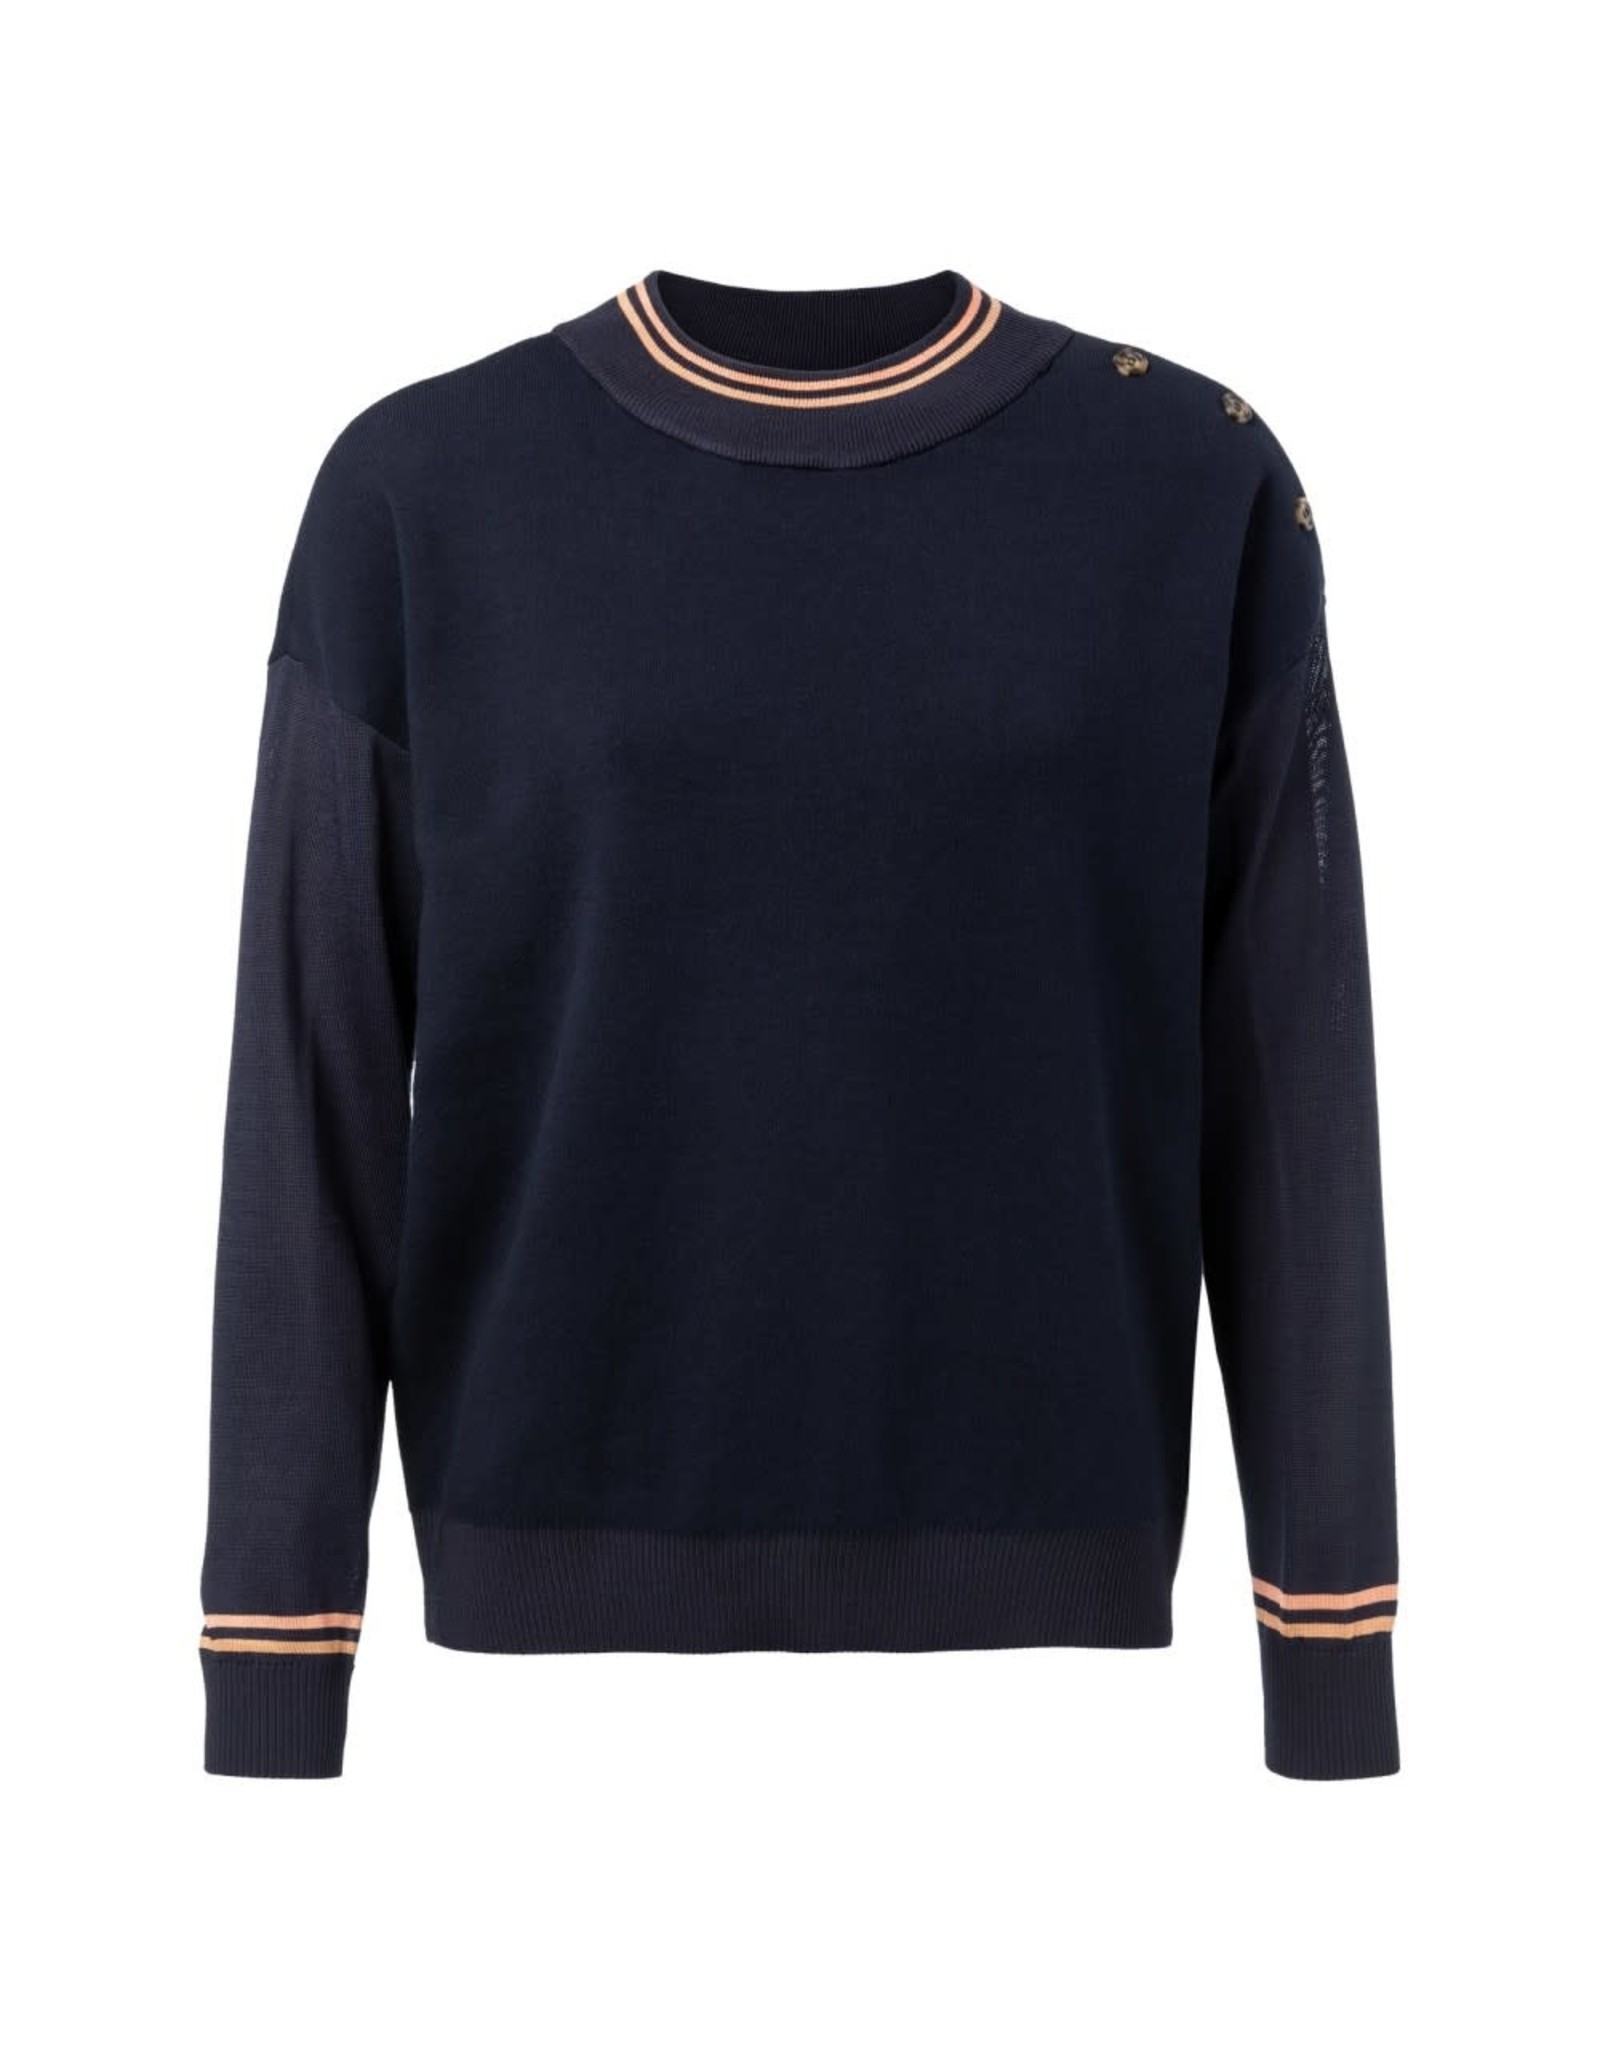 Yaya Yaya Sporty Crewneck Sweater